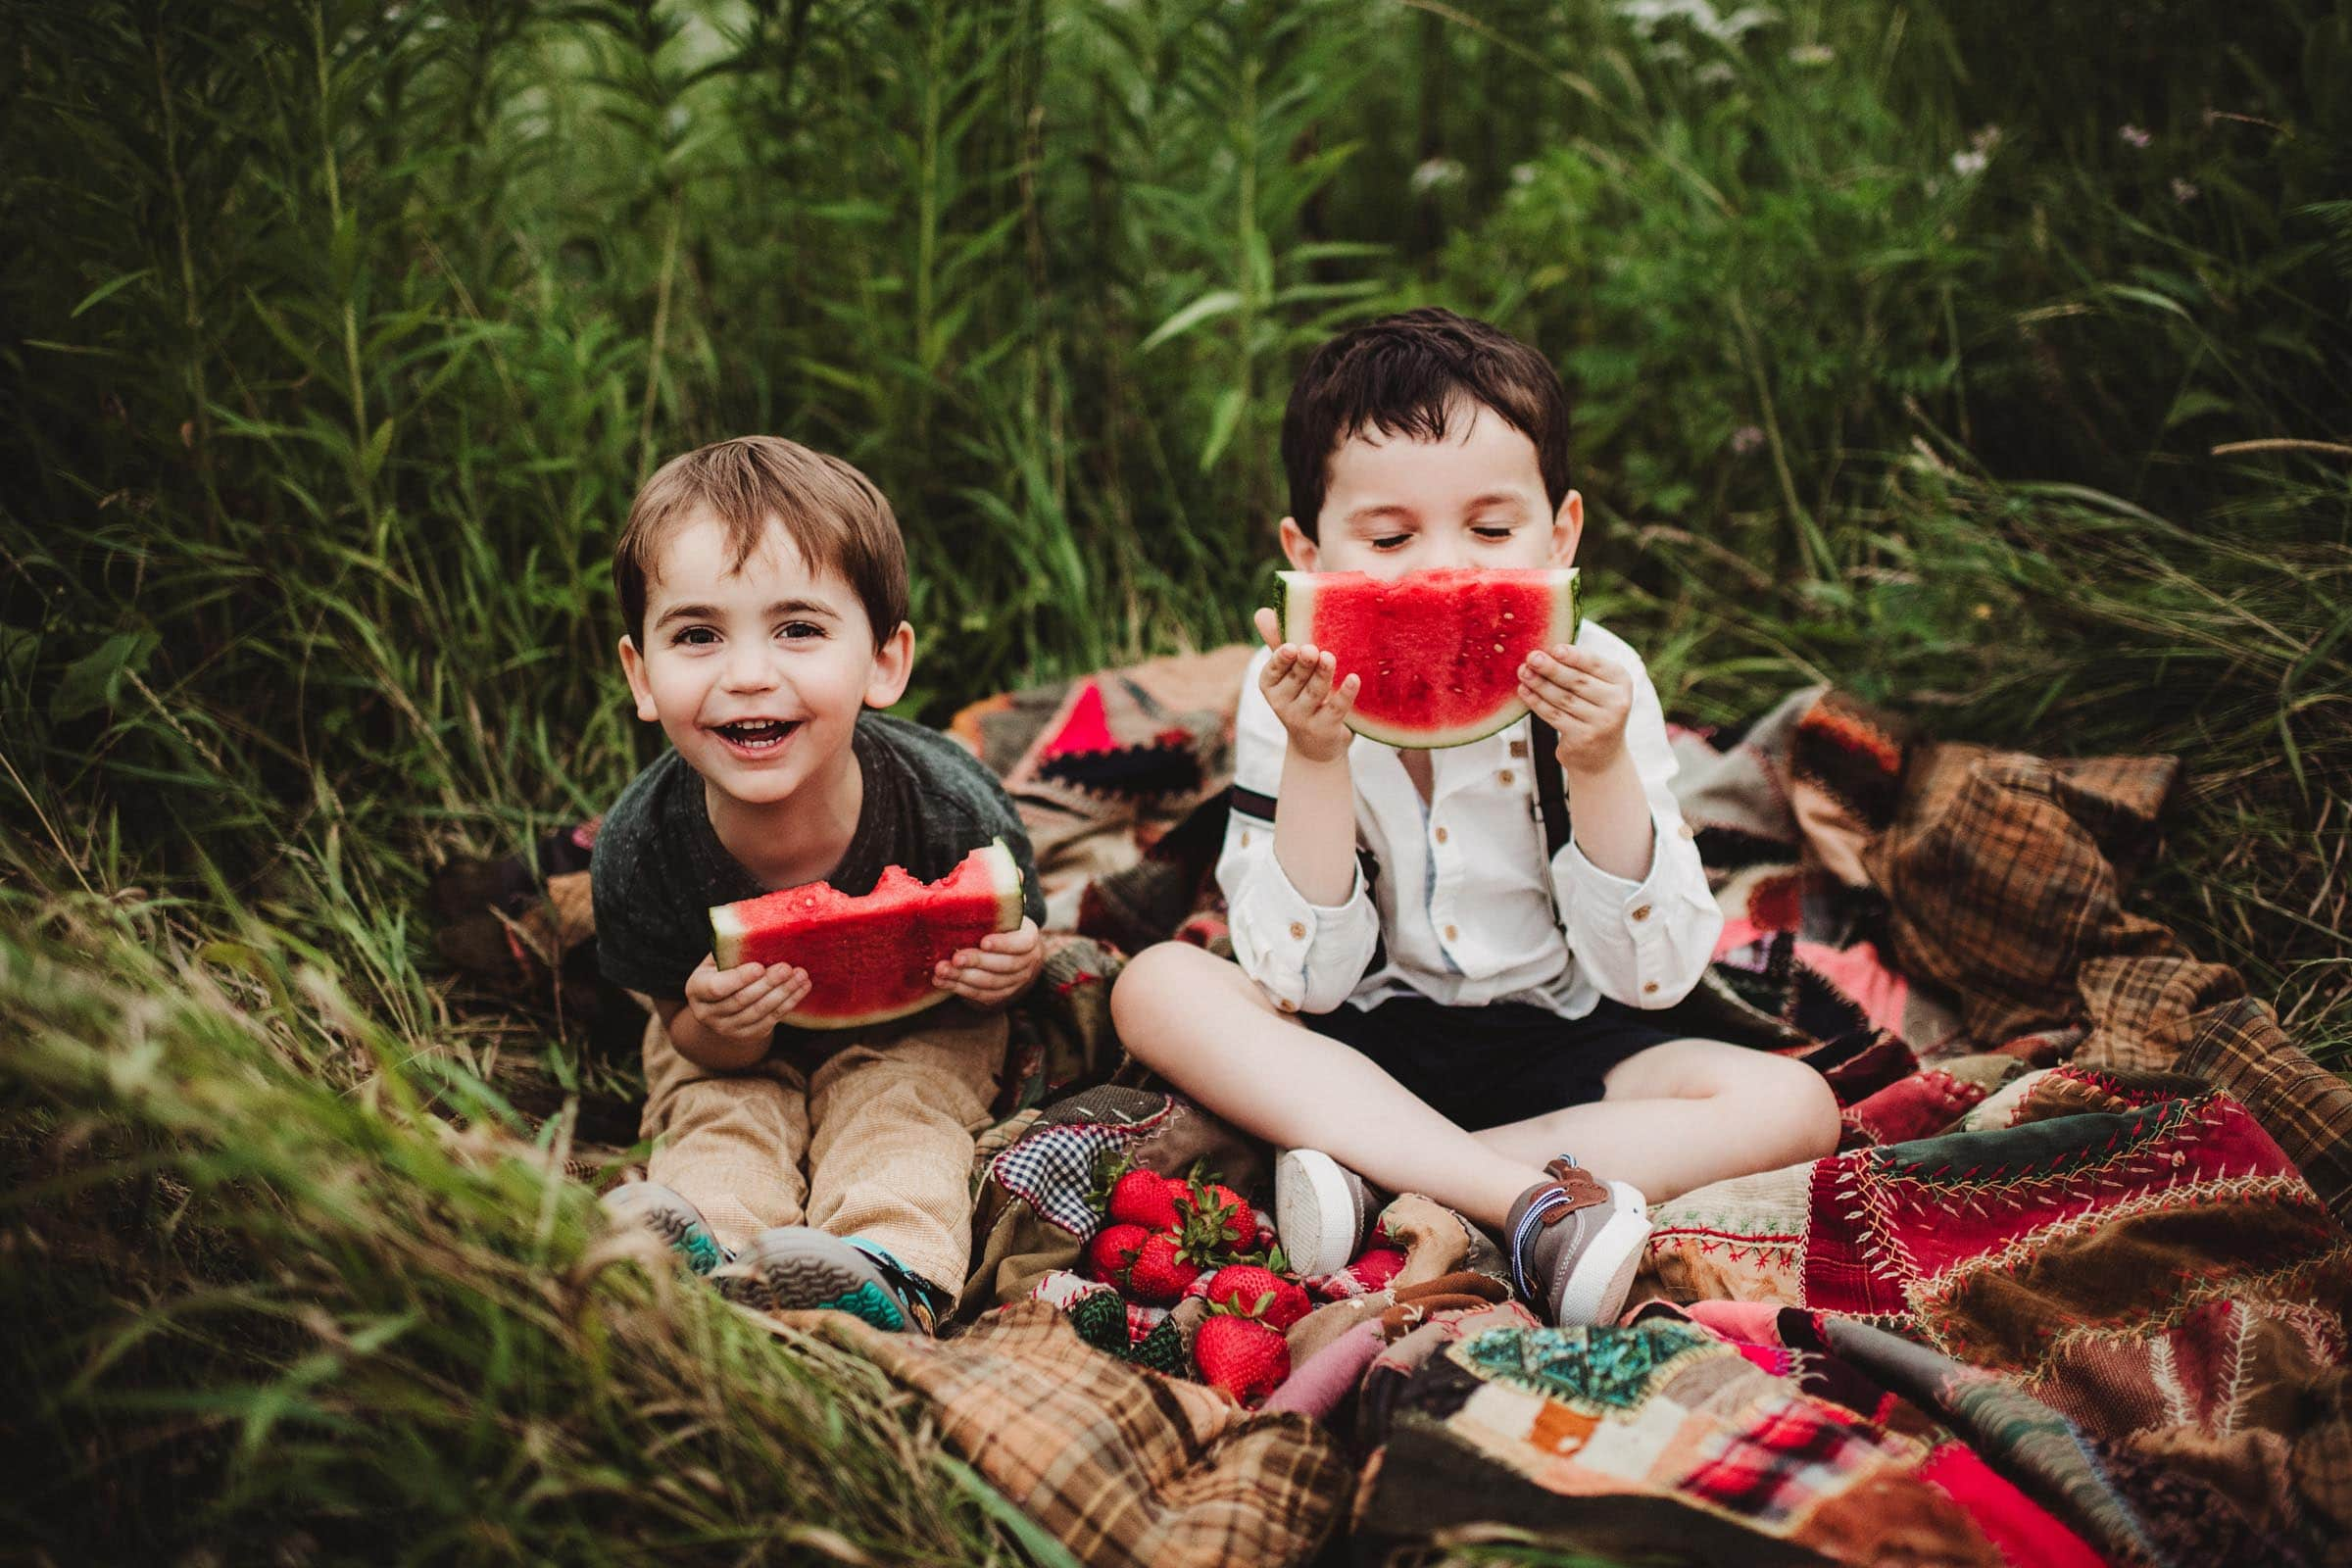 Little Boys Sitting on Quilt Eating Watermelon